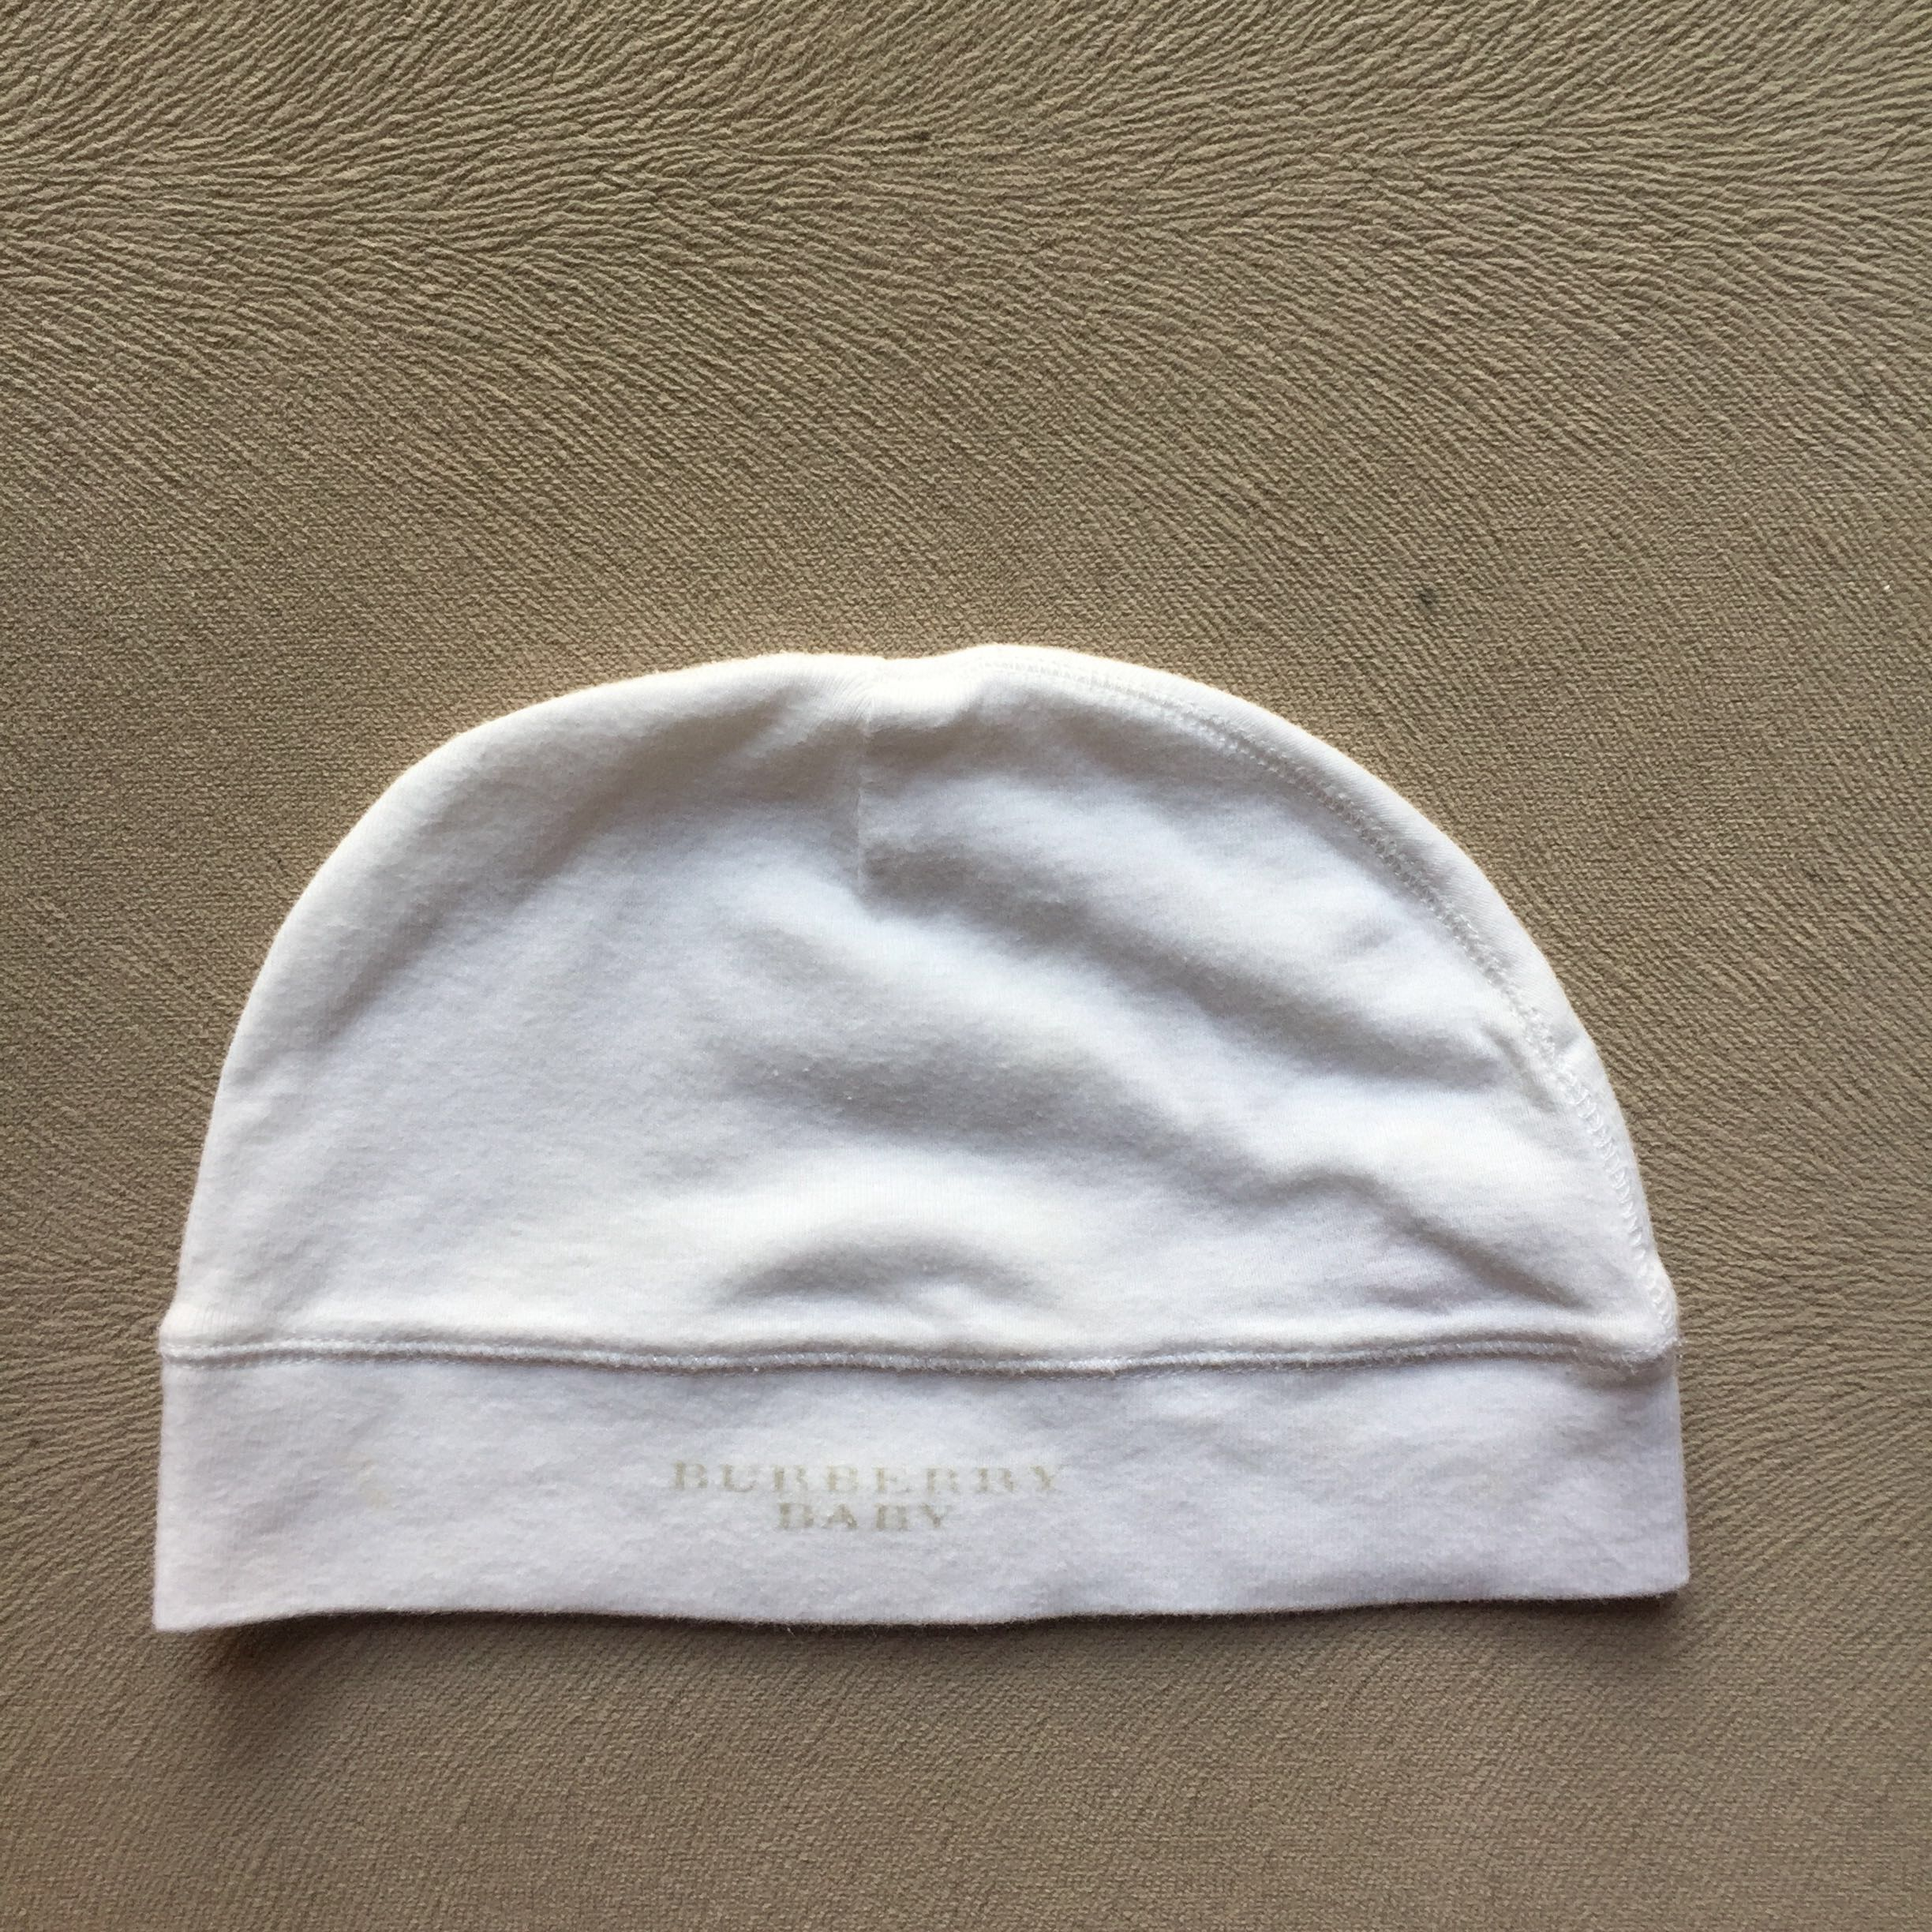 Authentic BURBERRY BABY hat 12mths c166de413099